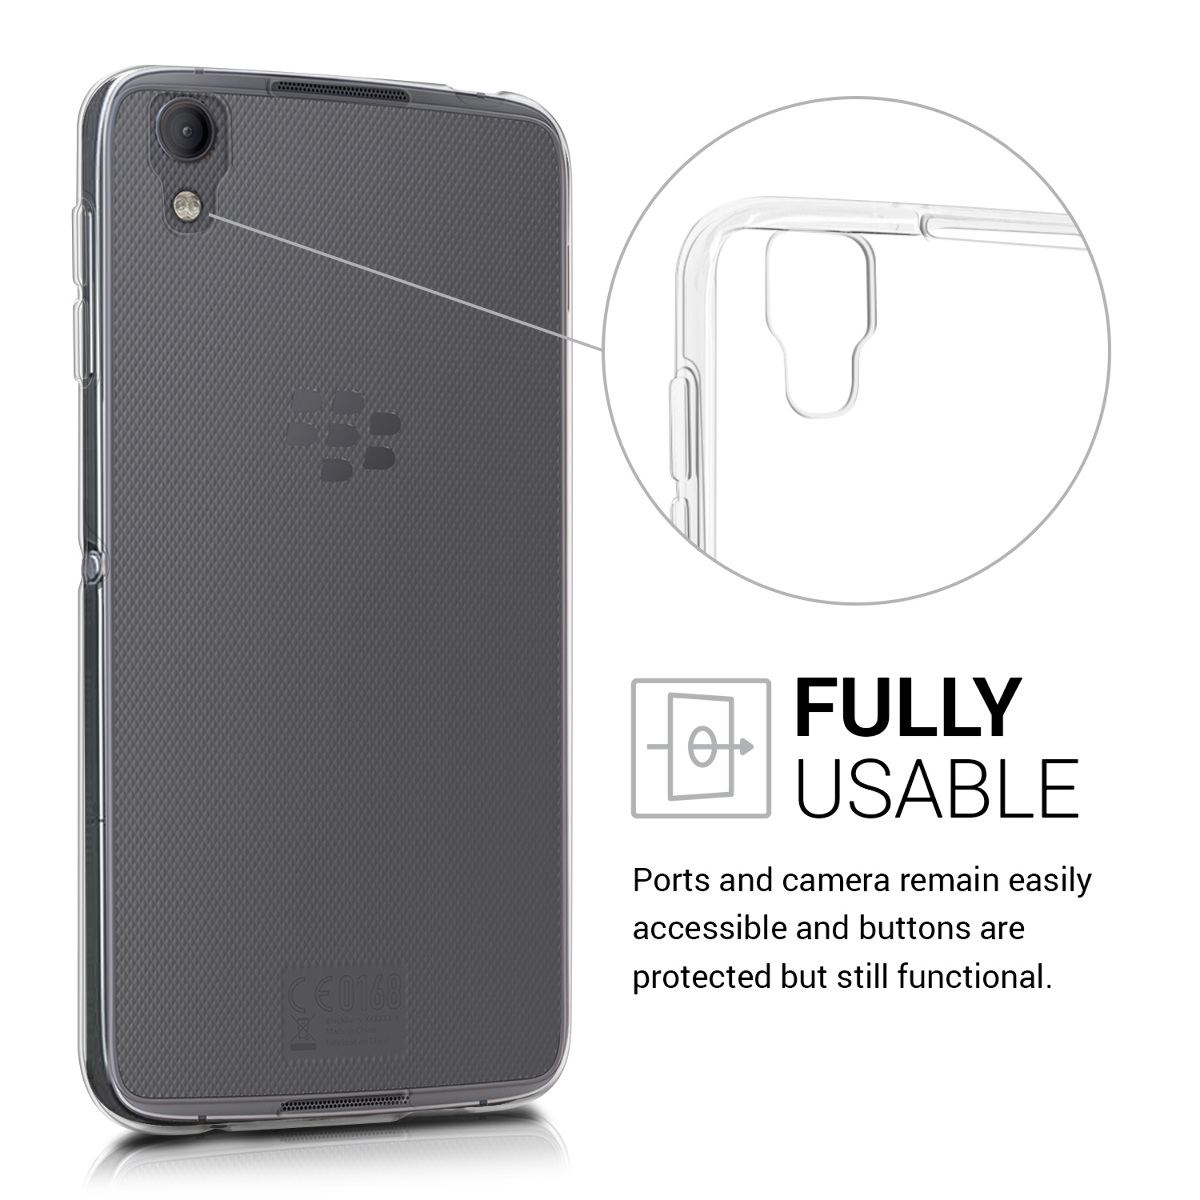 Crystal-Case-fur-Blackberry-DTEK50-TPU-Silikon-Schutz-Hulle-Cover-Bumper-Handy